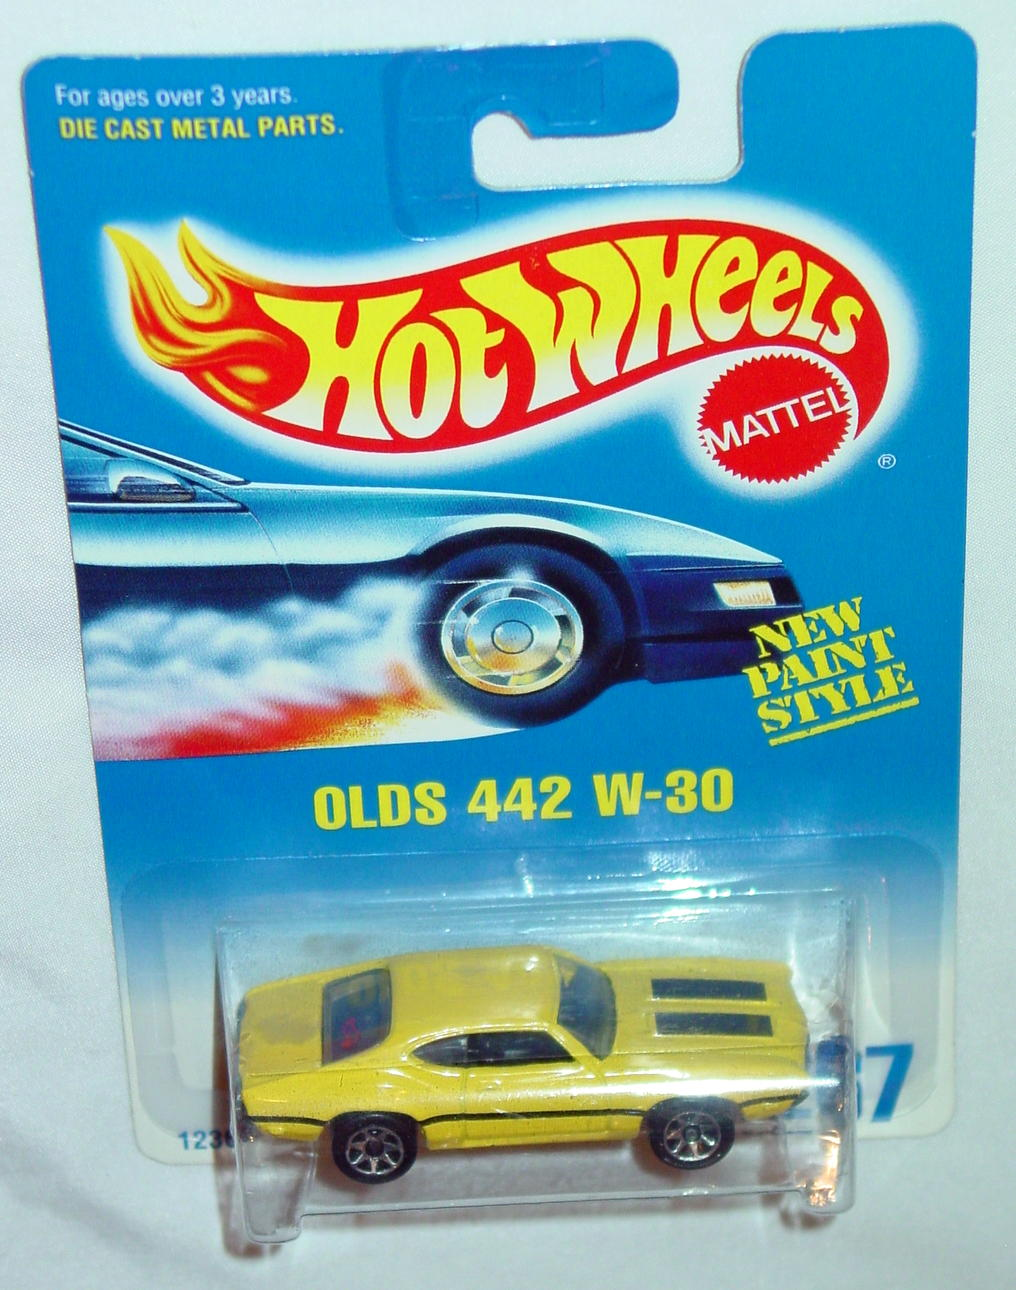 Blackwalls 12360 - 267 Olds 442 W-30 Yellow SP7